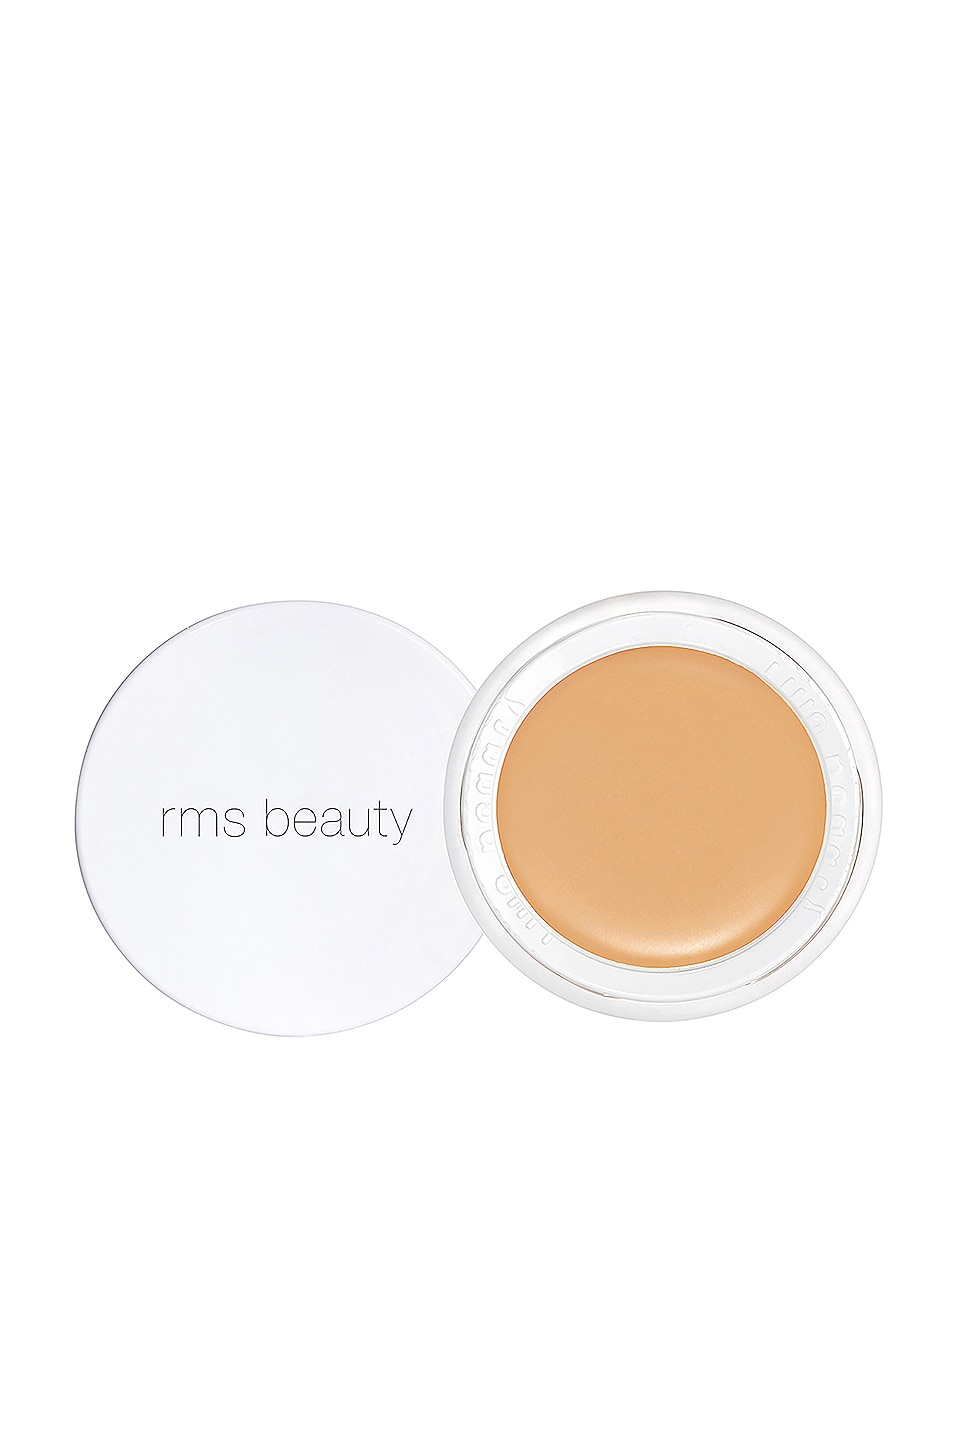 RMS Beauty Uncover Up in 22.5